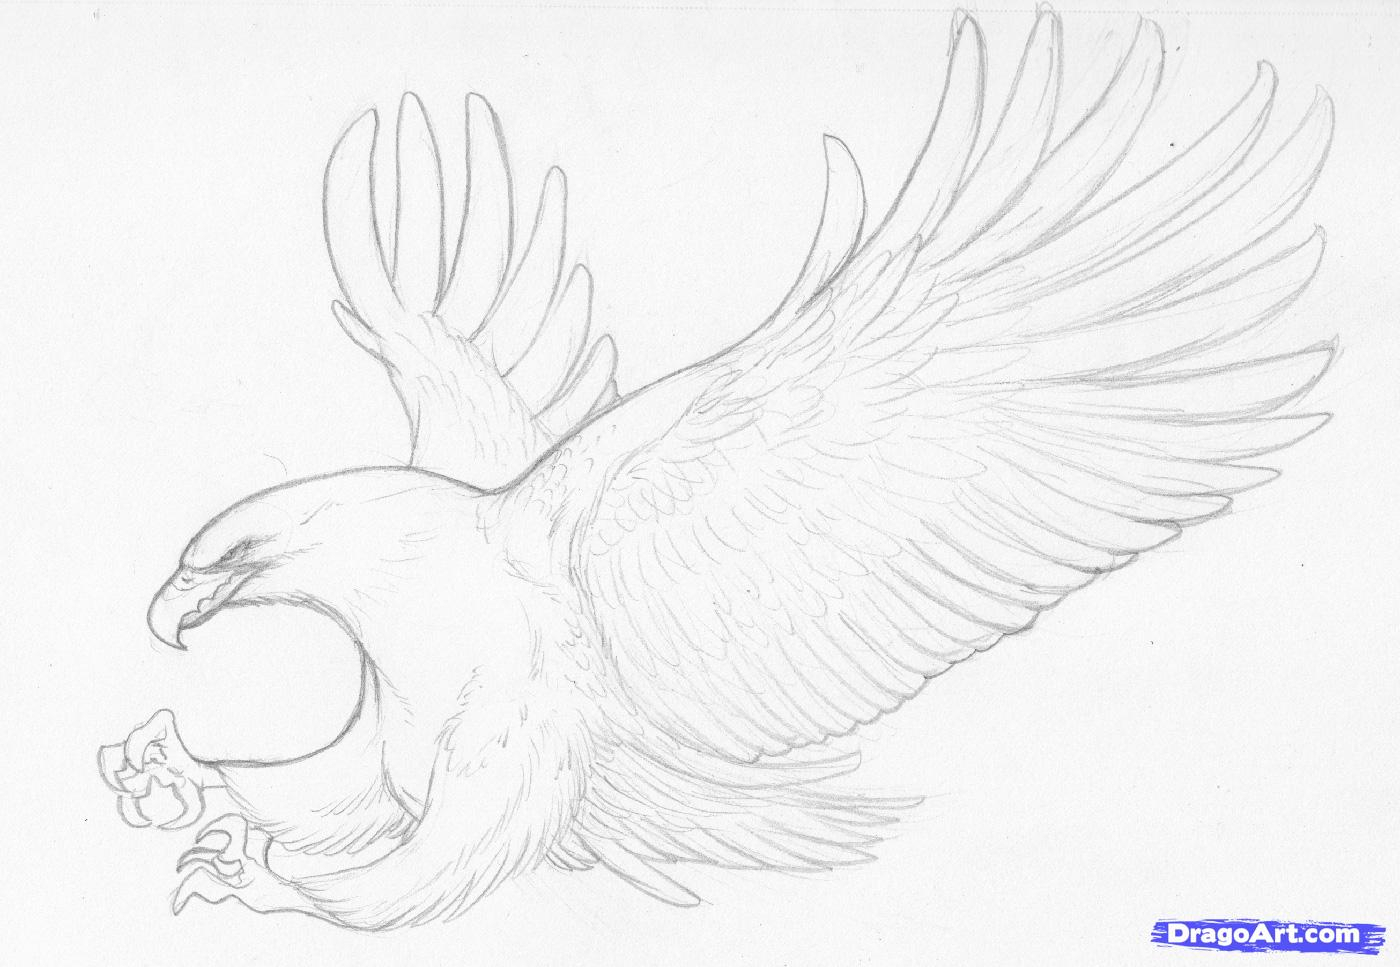 1400x967 Pencil Drawing Step By Step How To Sketch An Eagle In Pencil, Draw